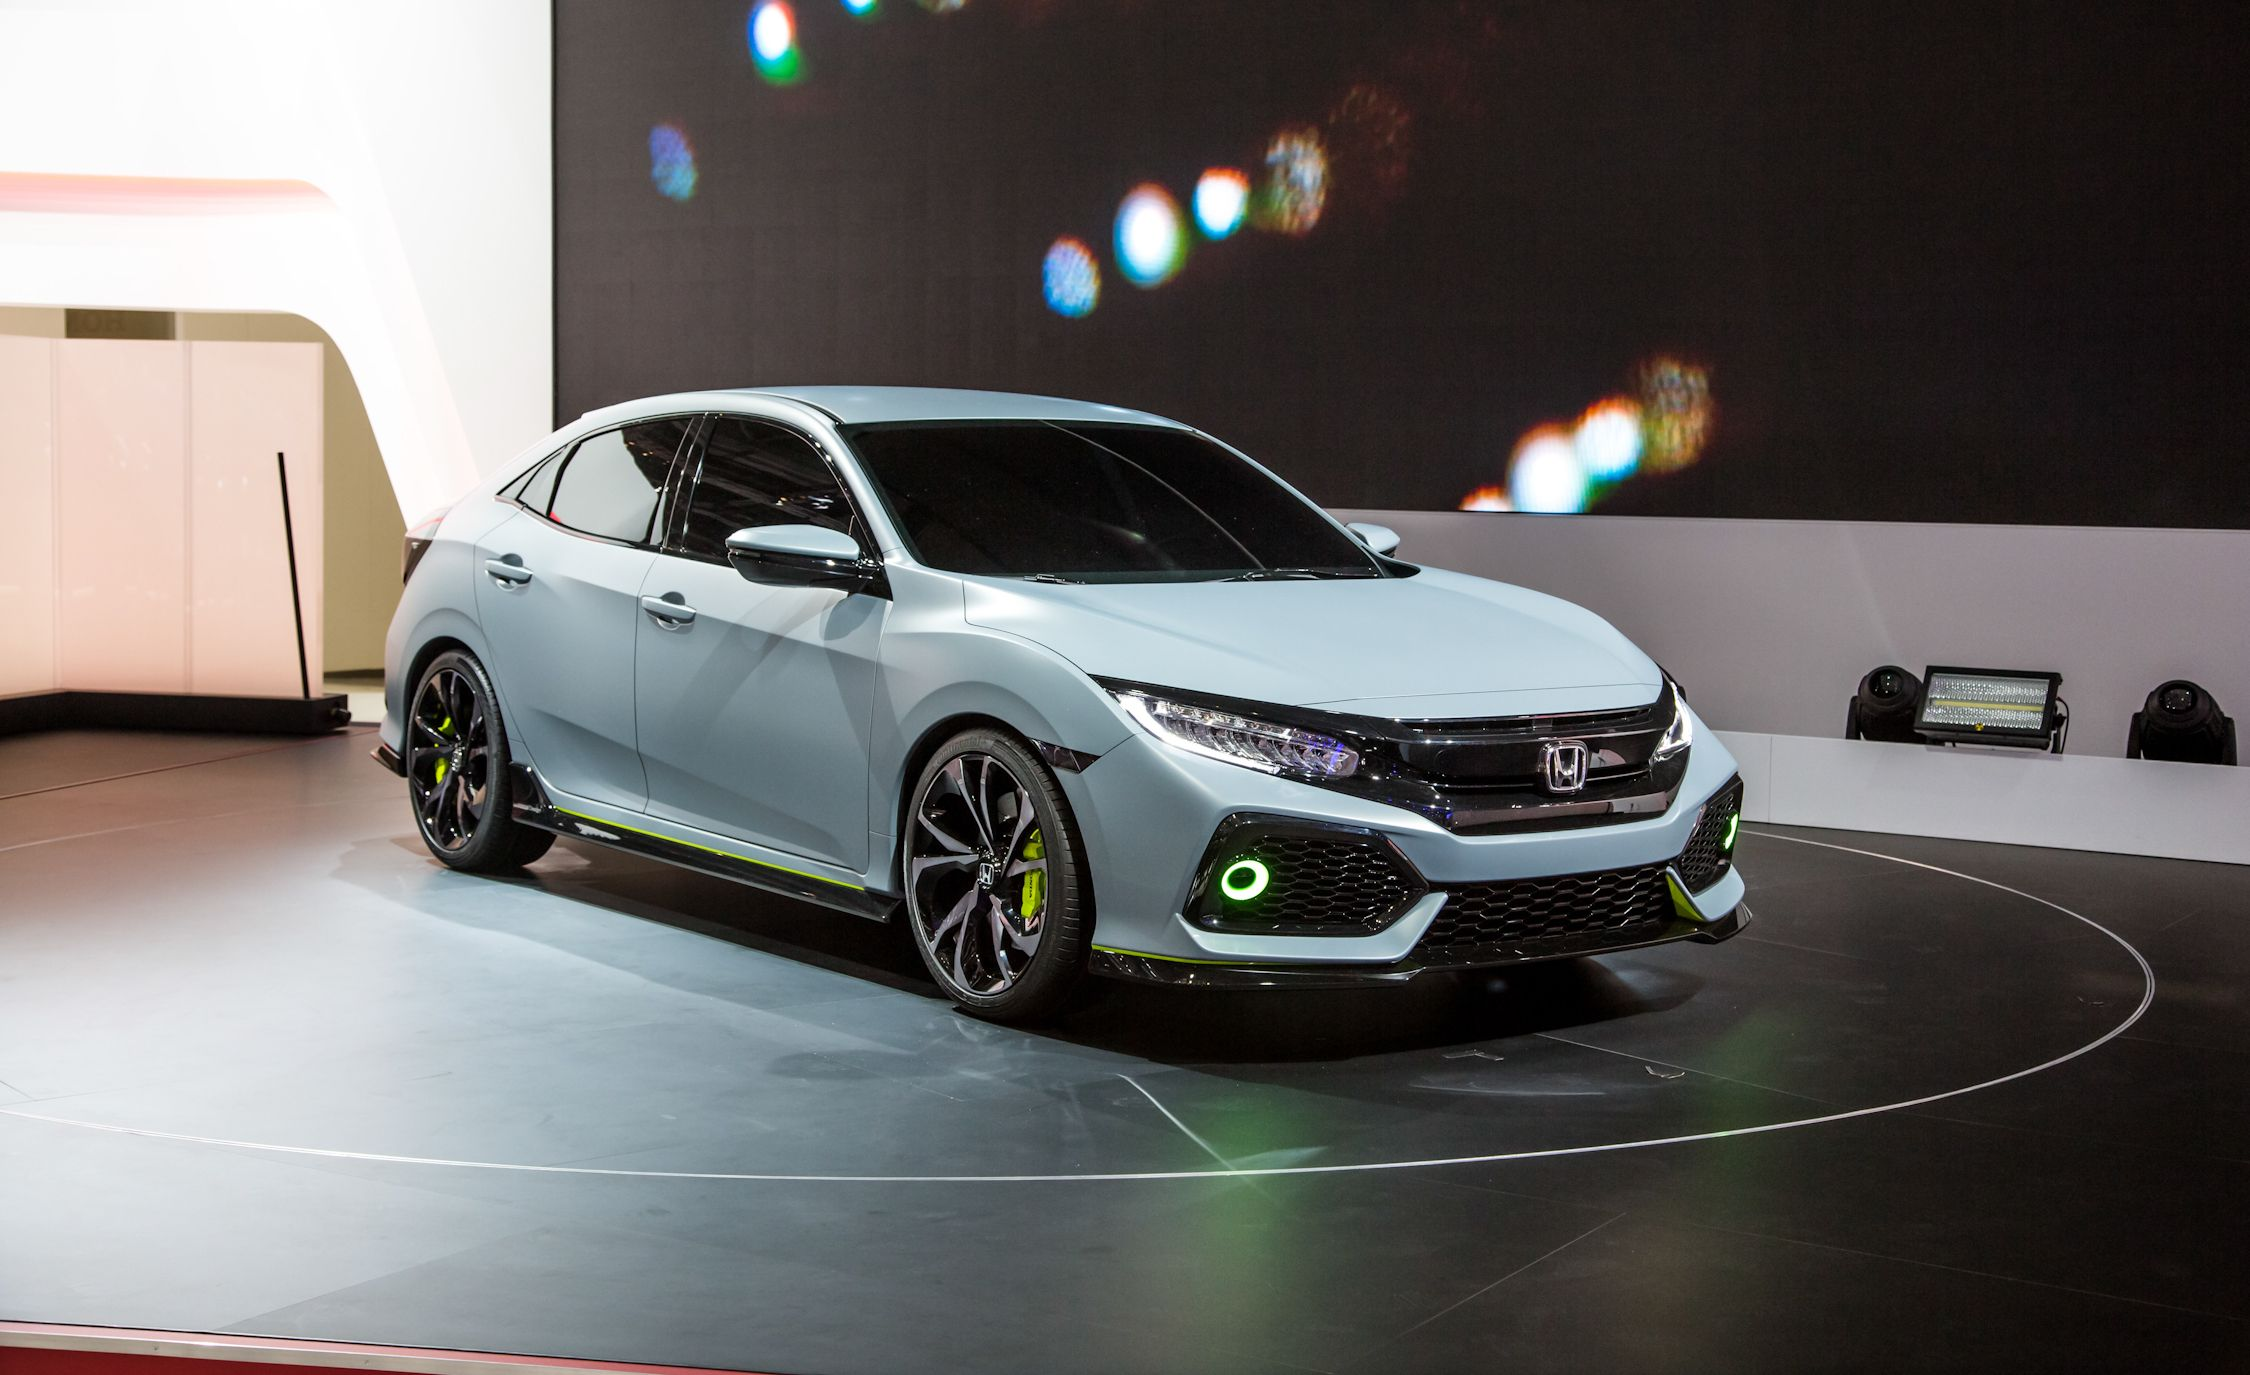 2017 Honda Civic sedan Pictures  Photo Gallery  Car and Driver